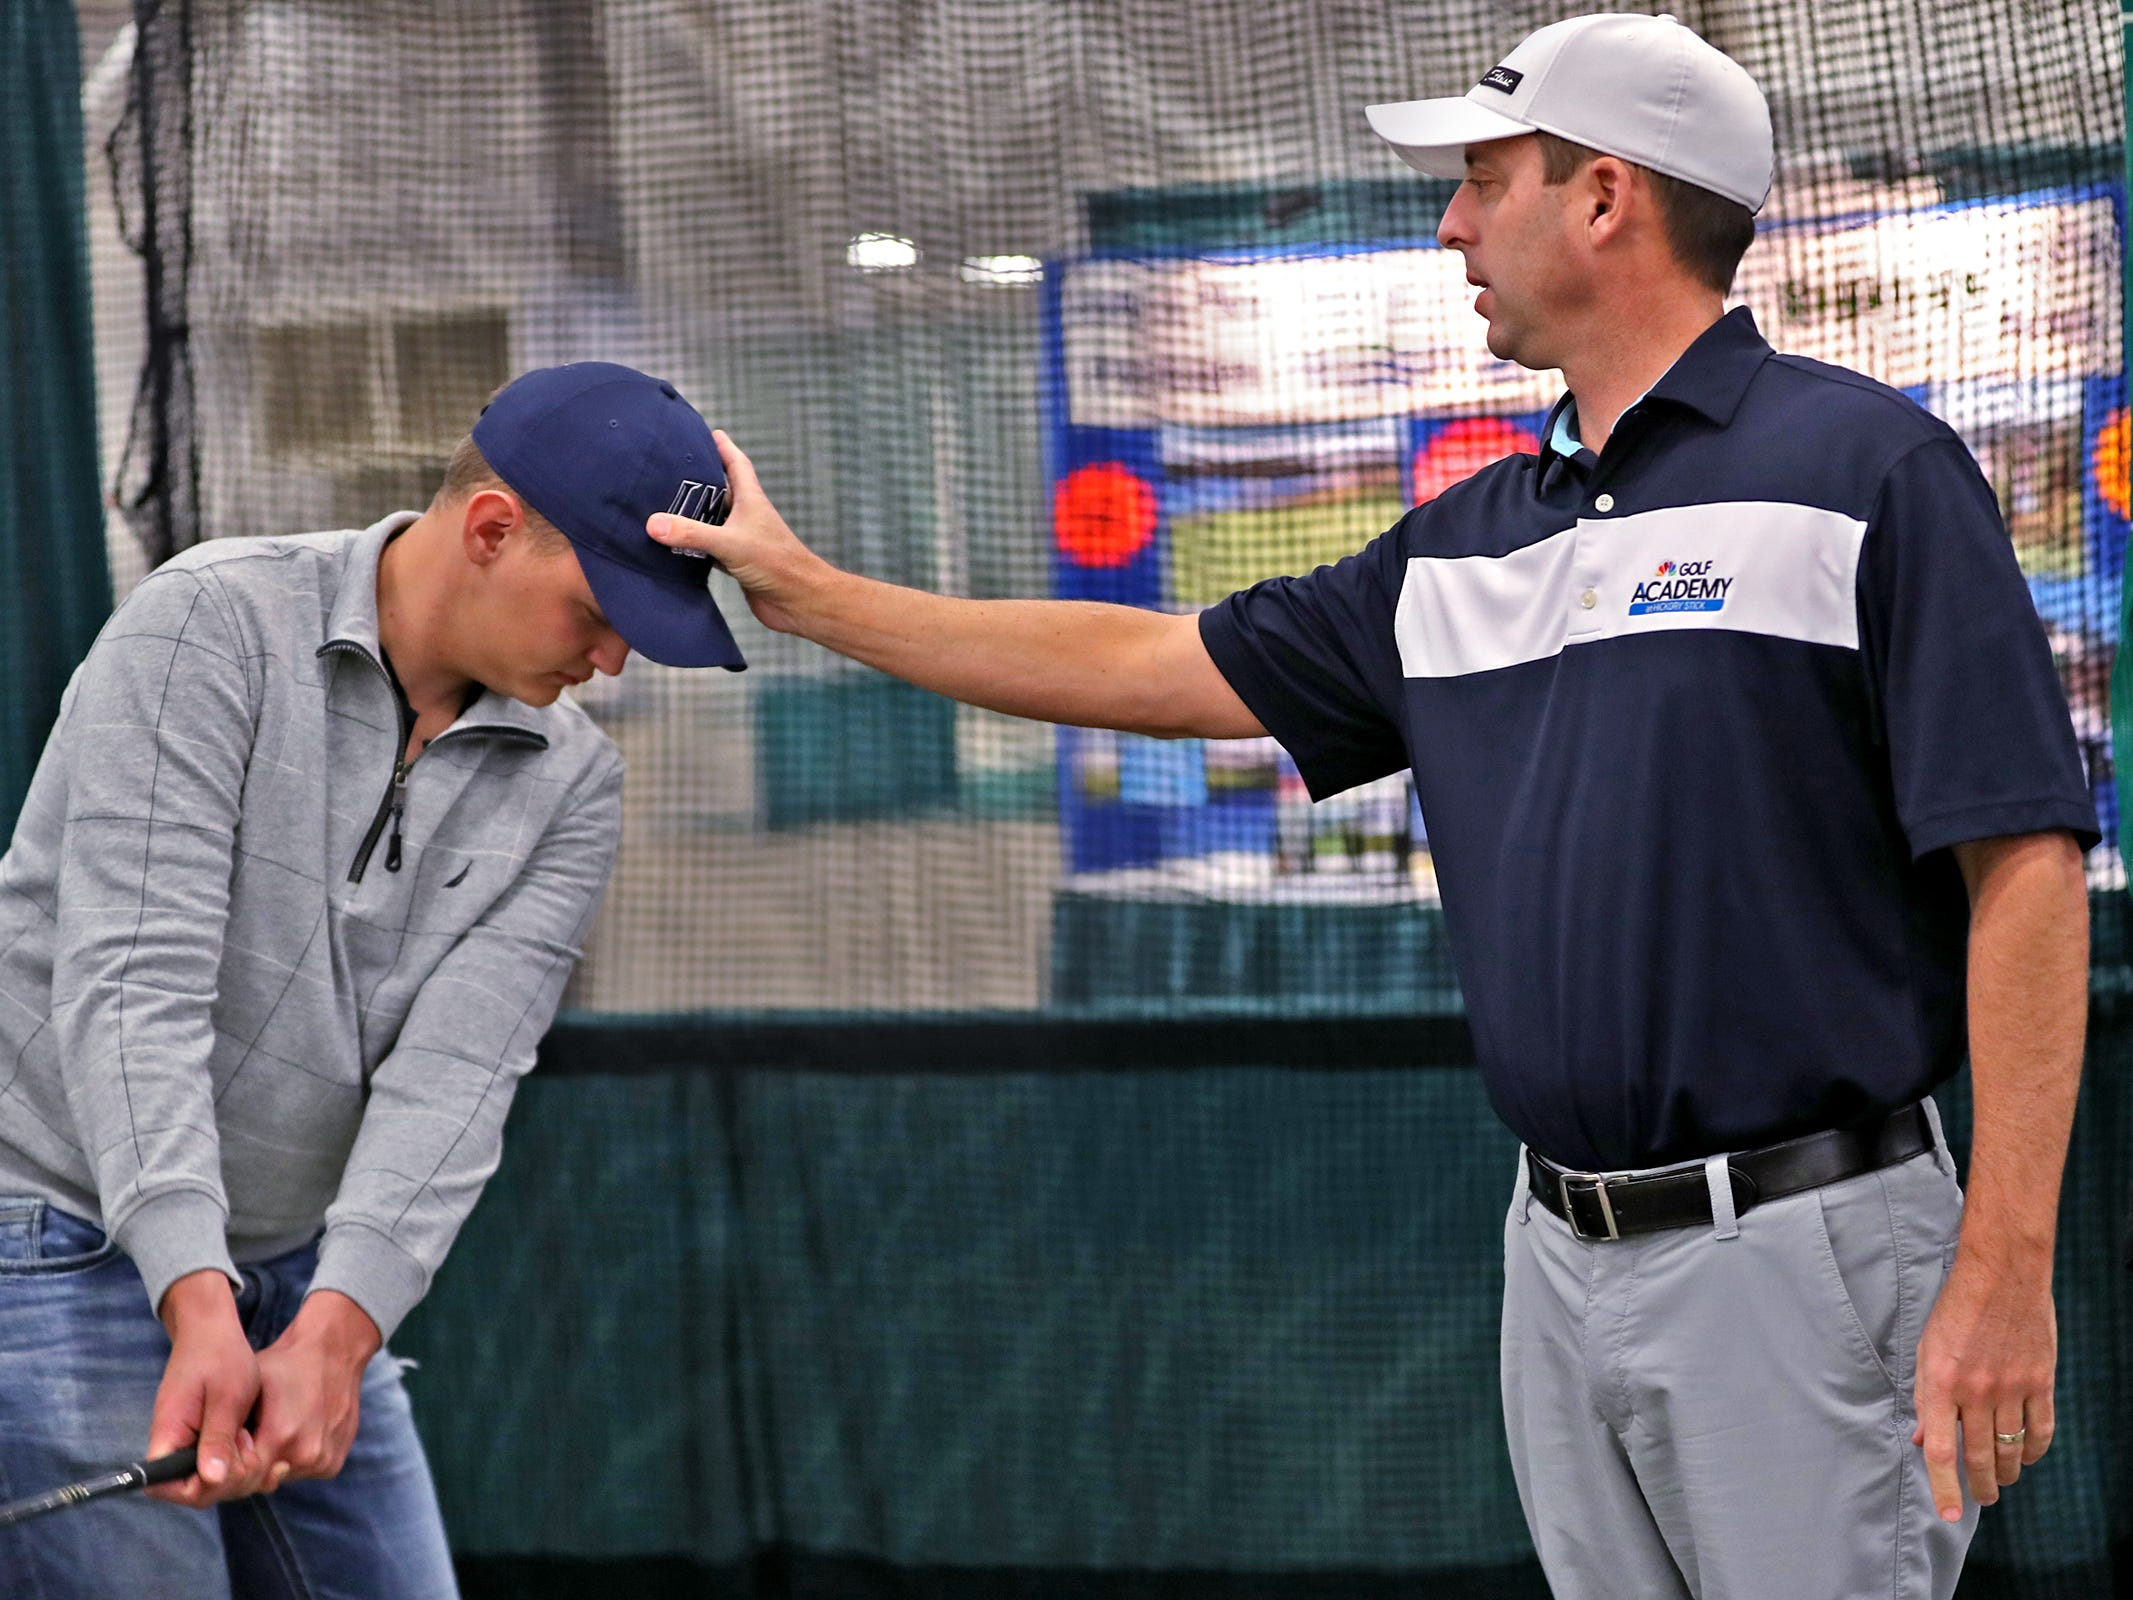 Brett Widner, left, gets tips about the positioning of his head during his golf swing, from Colby Huffman at the Golf Channel with Colby Huffman booth during the Indy Golf Expo at the Indiana State Fairgrounds, Sunday, Jan. 20, 2019.